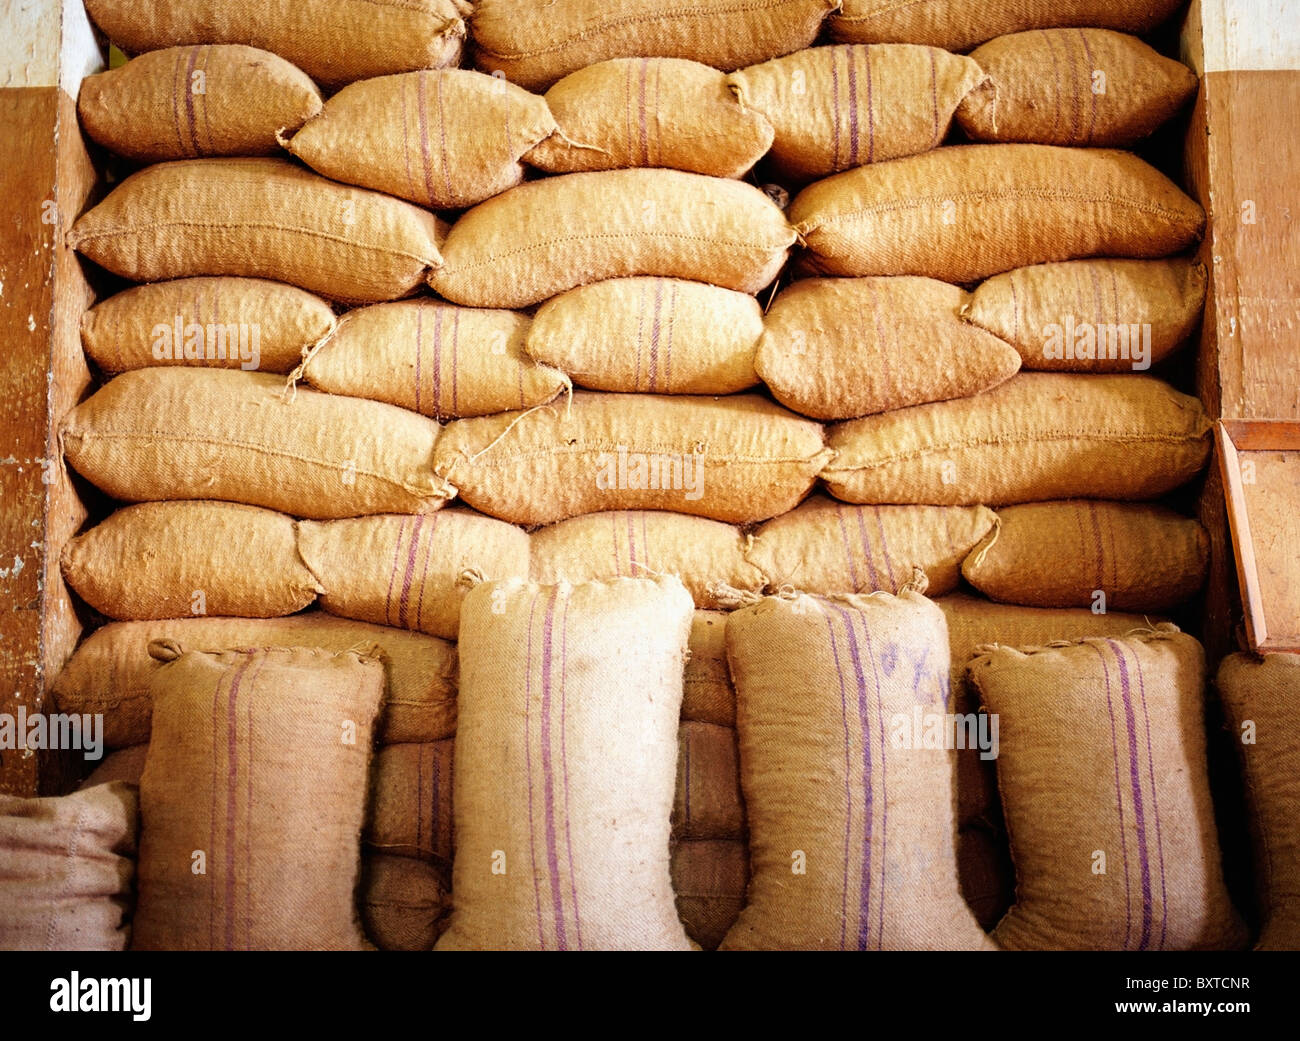 Burlap Sacks Stacked Up In A Nutmeg Factory - Stock Image